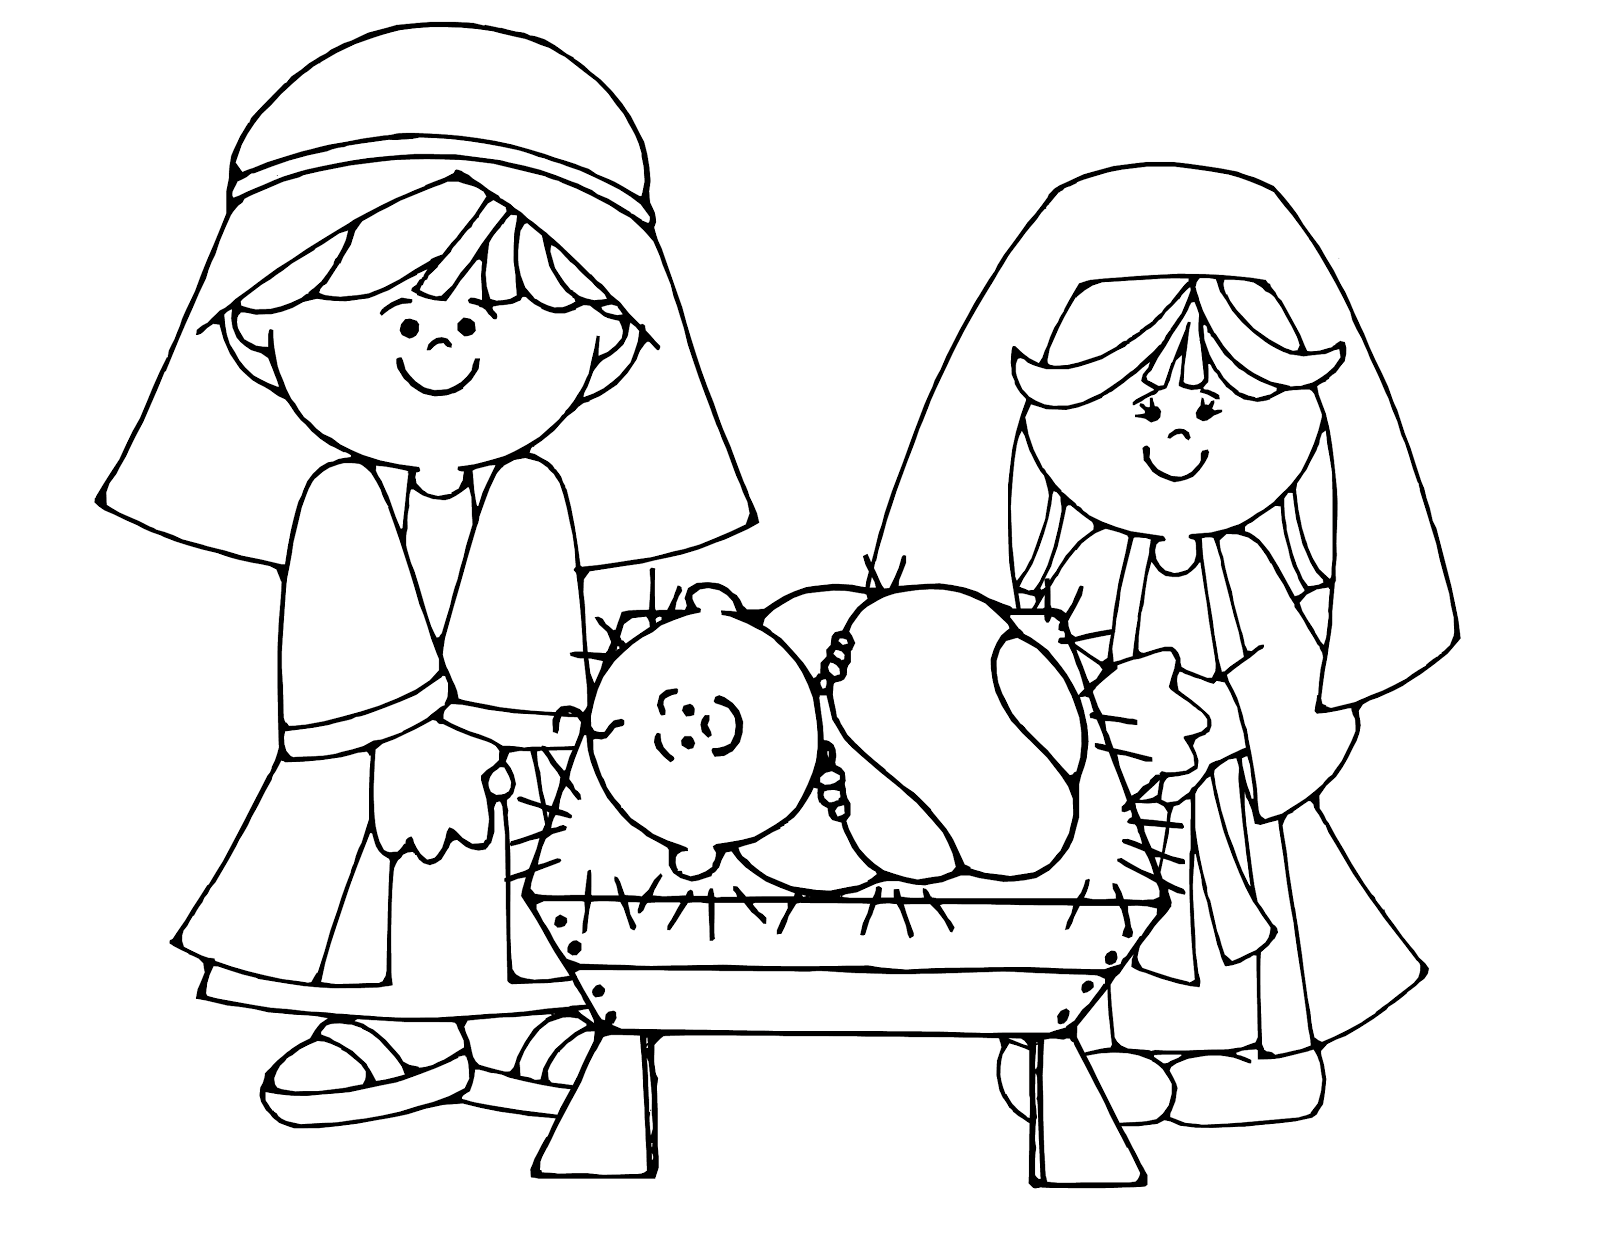 Christmas Coloring Nativity Scene With Simple Colouring Page Kids Crafts Pinterest